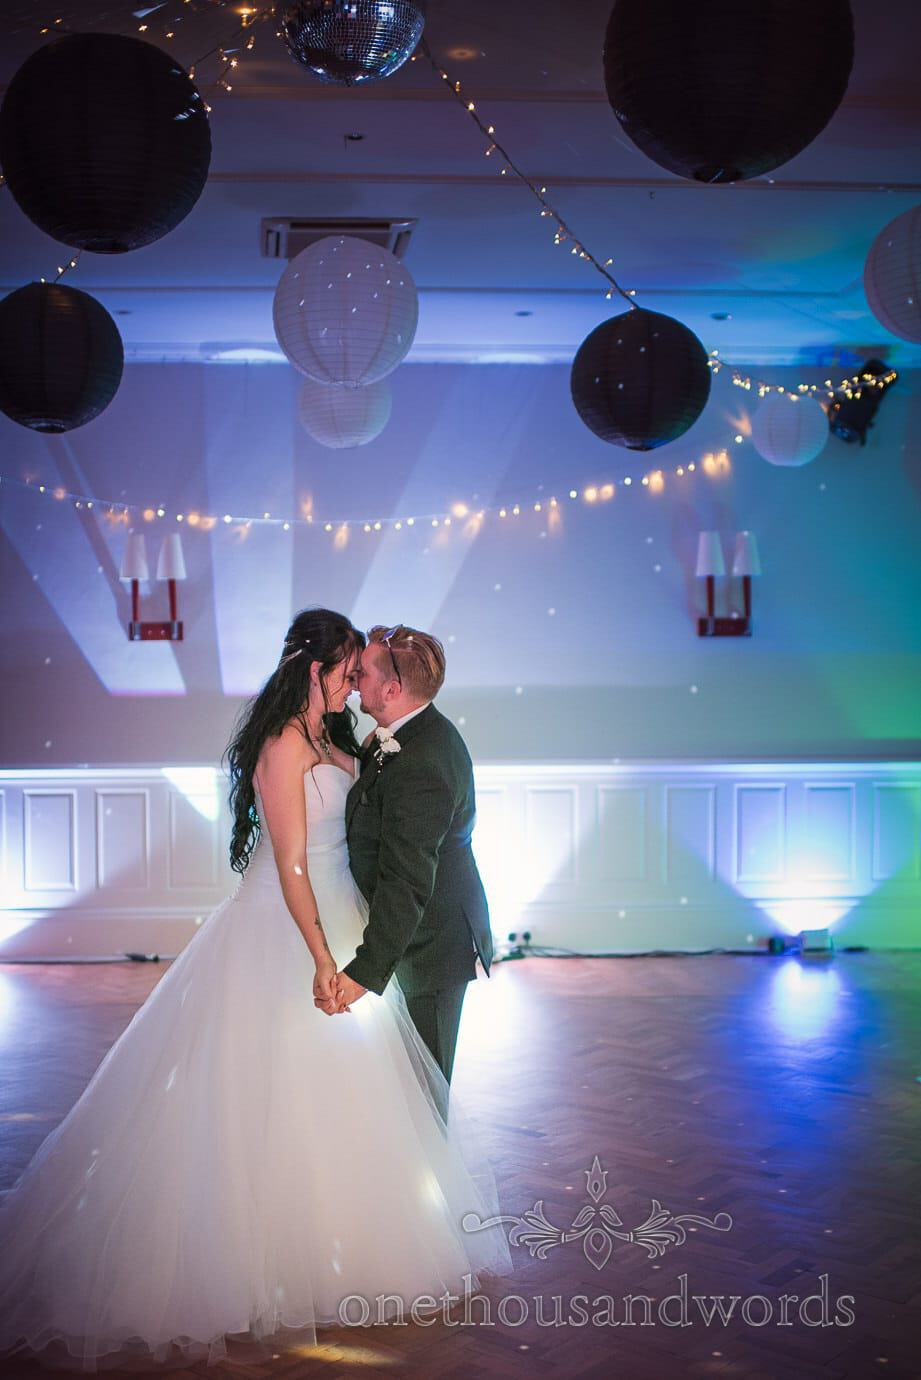 First dance at black and white themed rock and roll wedding under Chinese lanterns